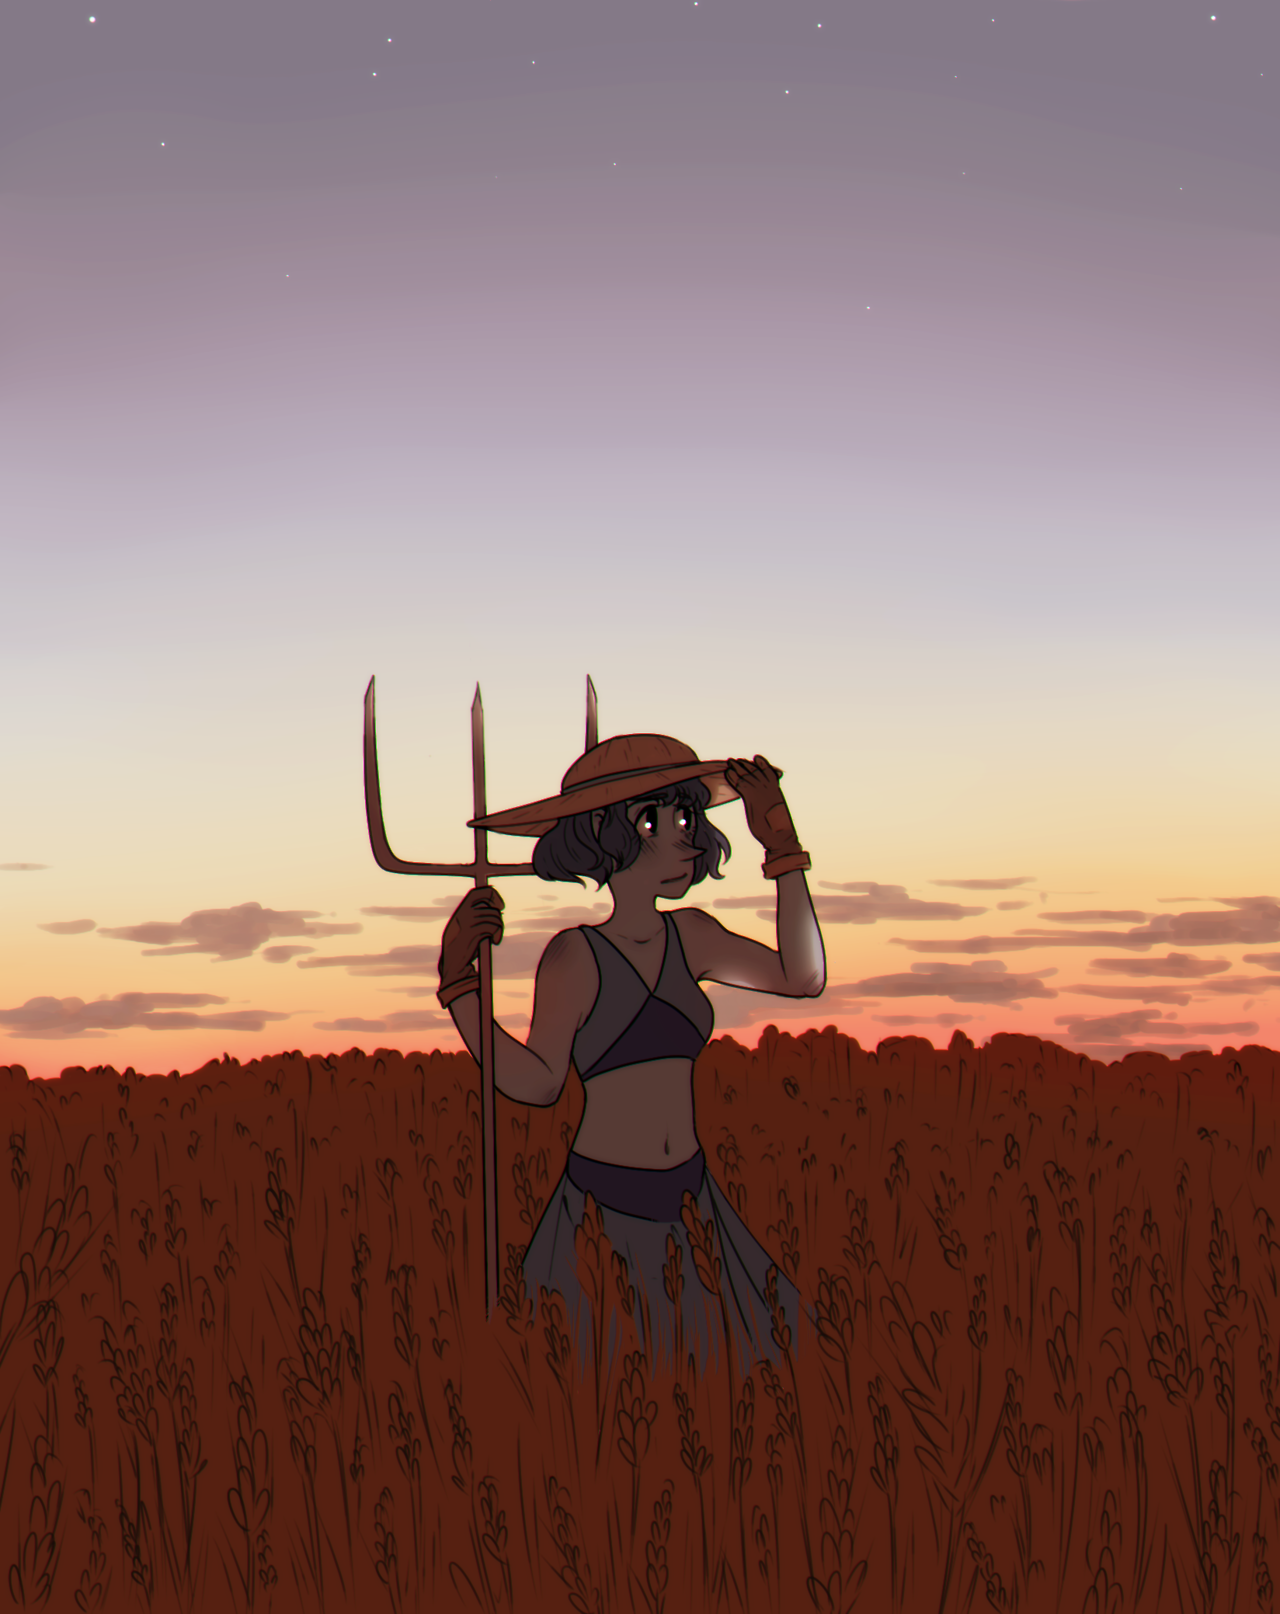 hello i don't know how to draw a wheatfield